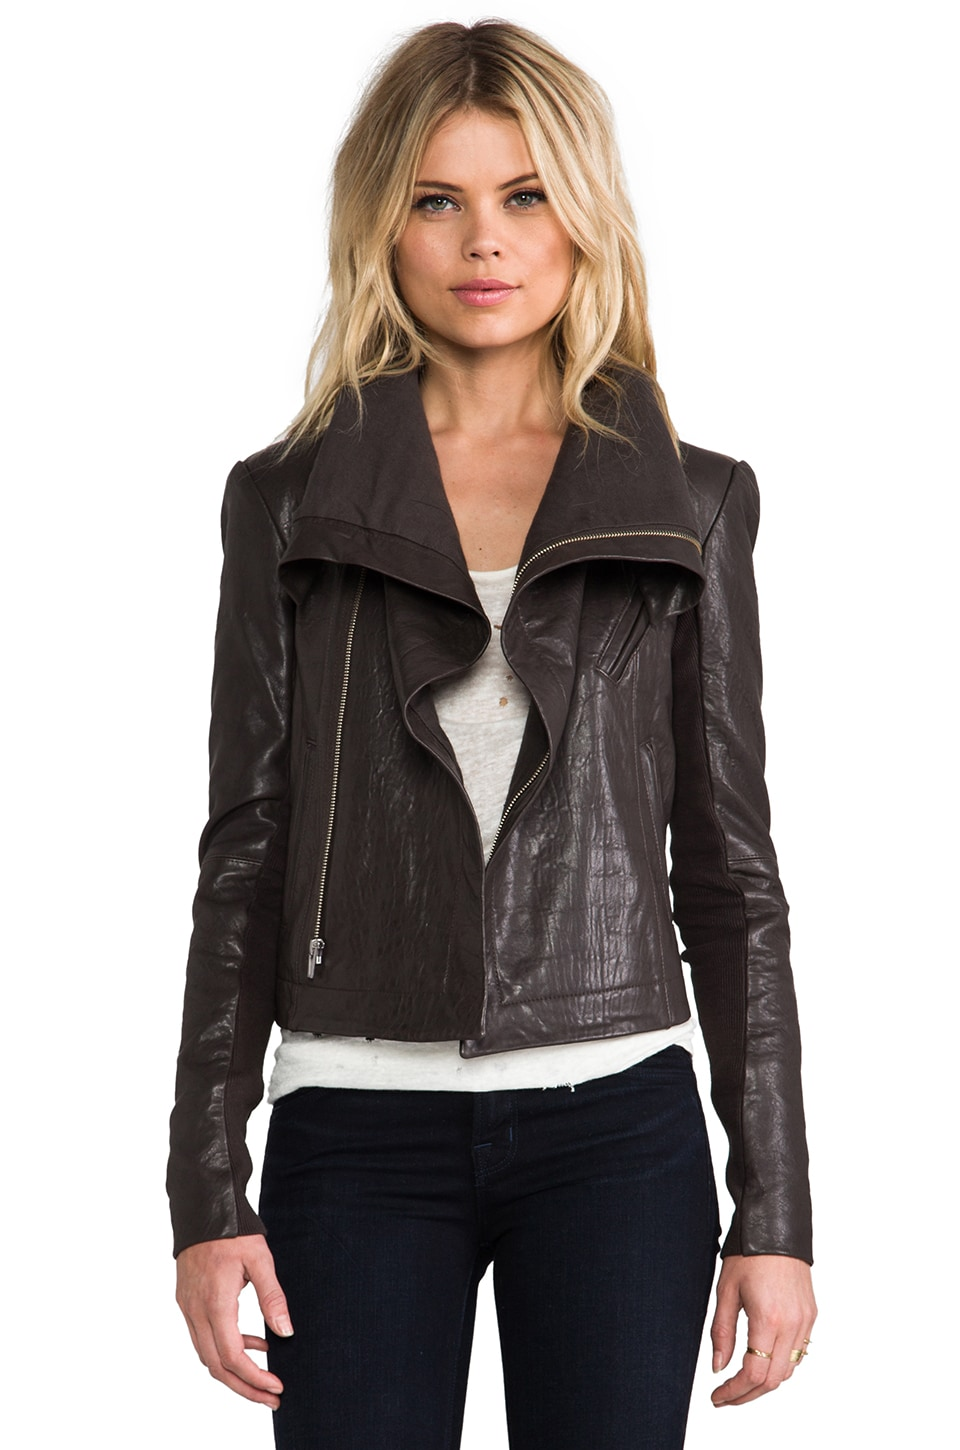 VEDA Max Classic Leather Jacket in Granite